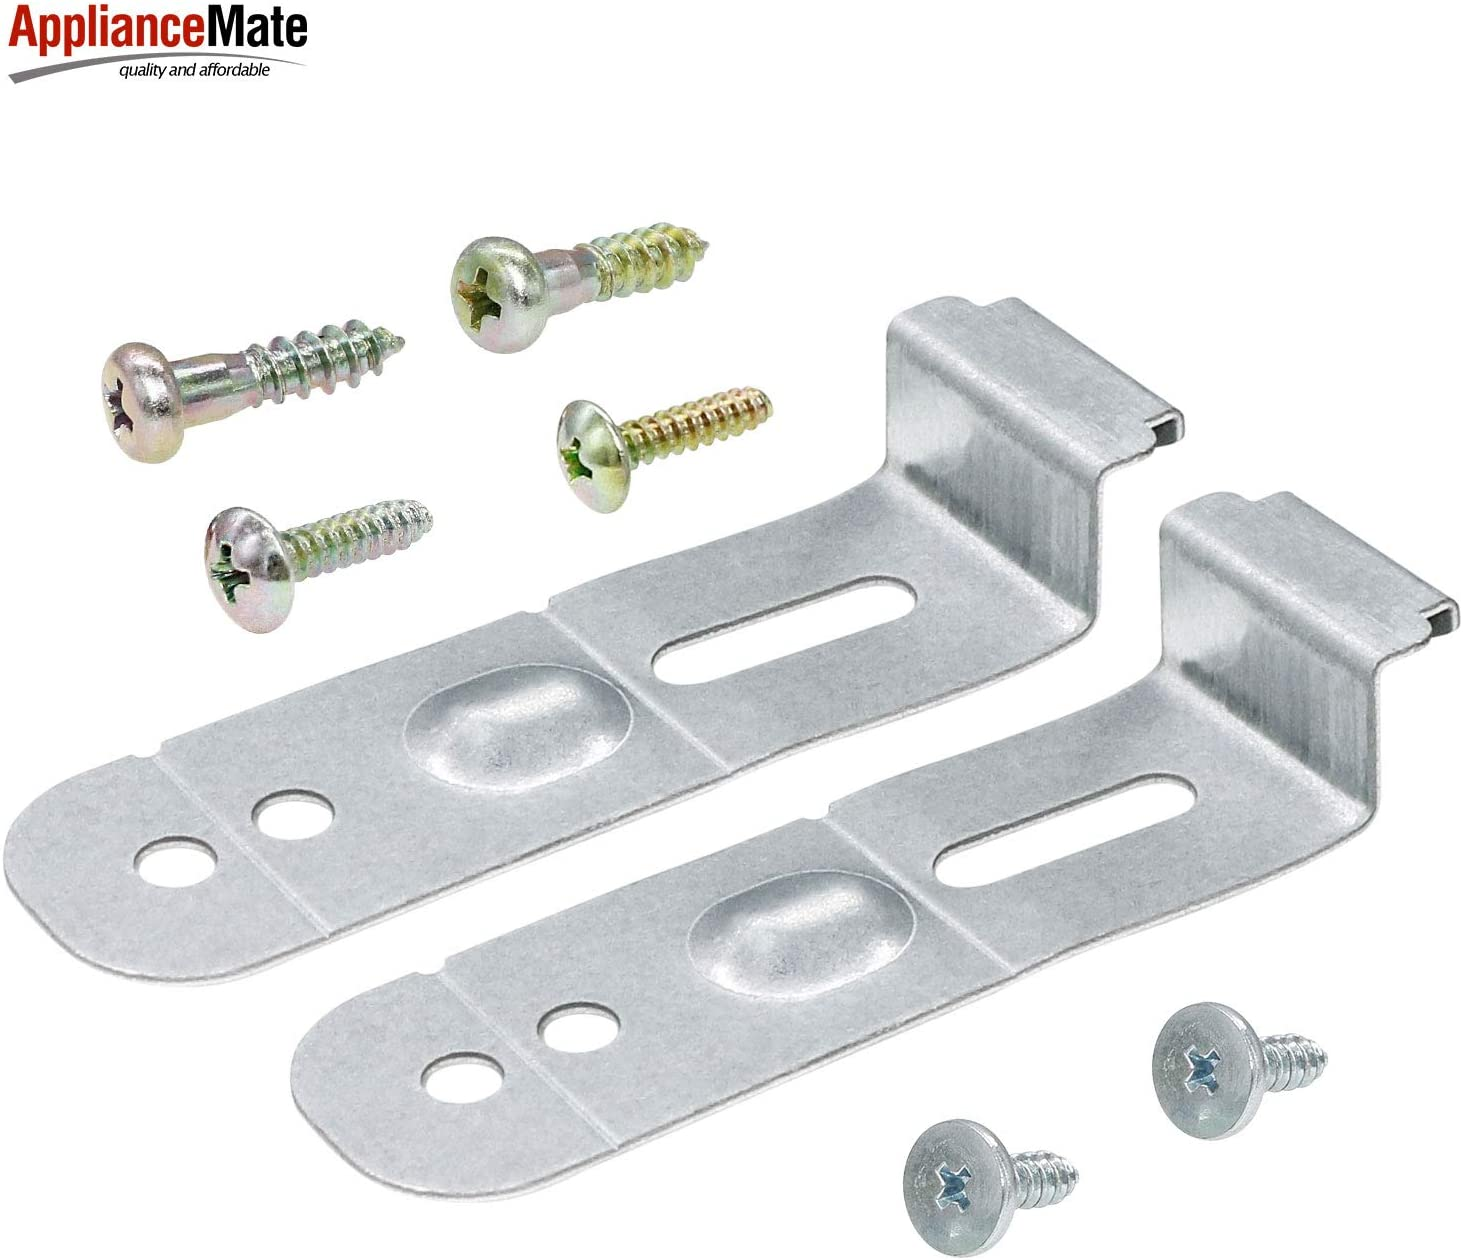 Appliancemate DD94-01002A Dishwasher Assembly-Install Kit fit for Samsung Dishwasher Mounting Bracket